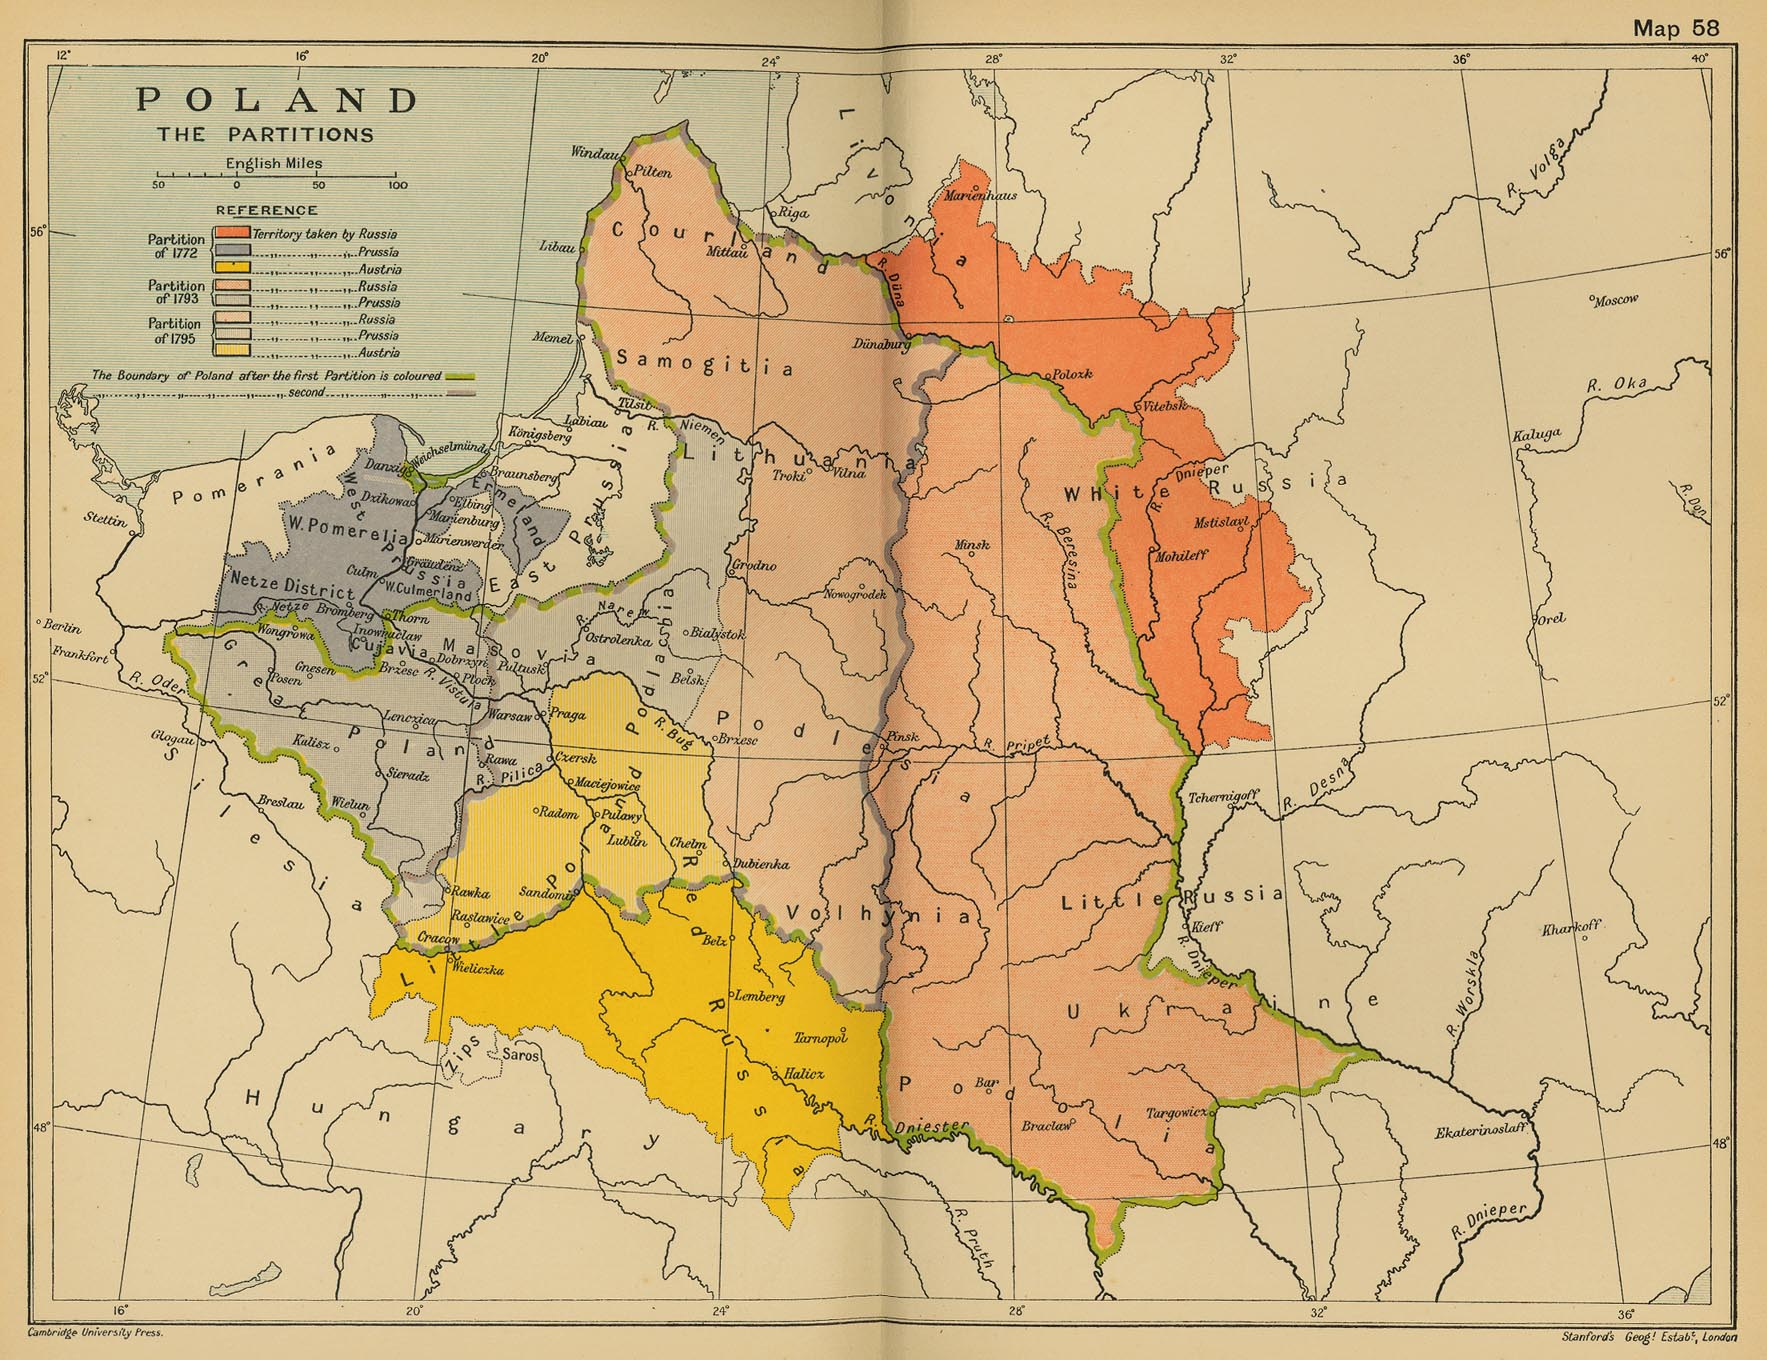 File:Poland partitions 1772.jpg